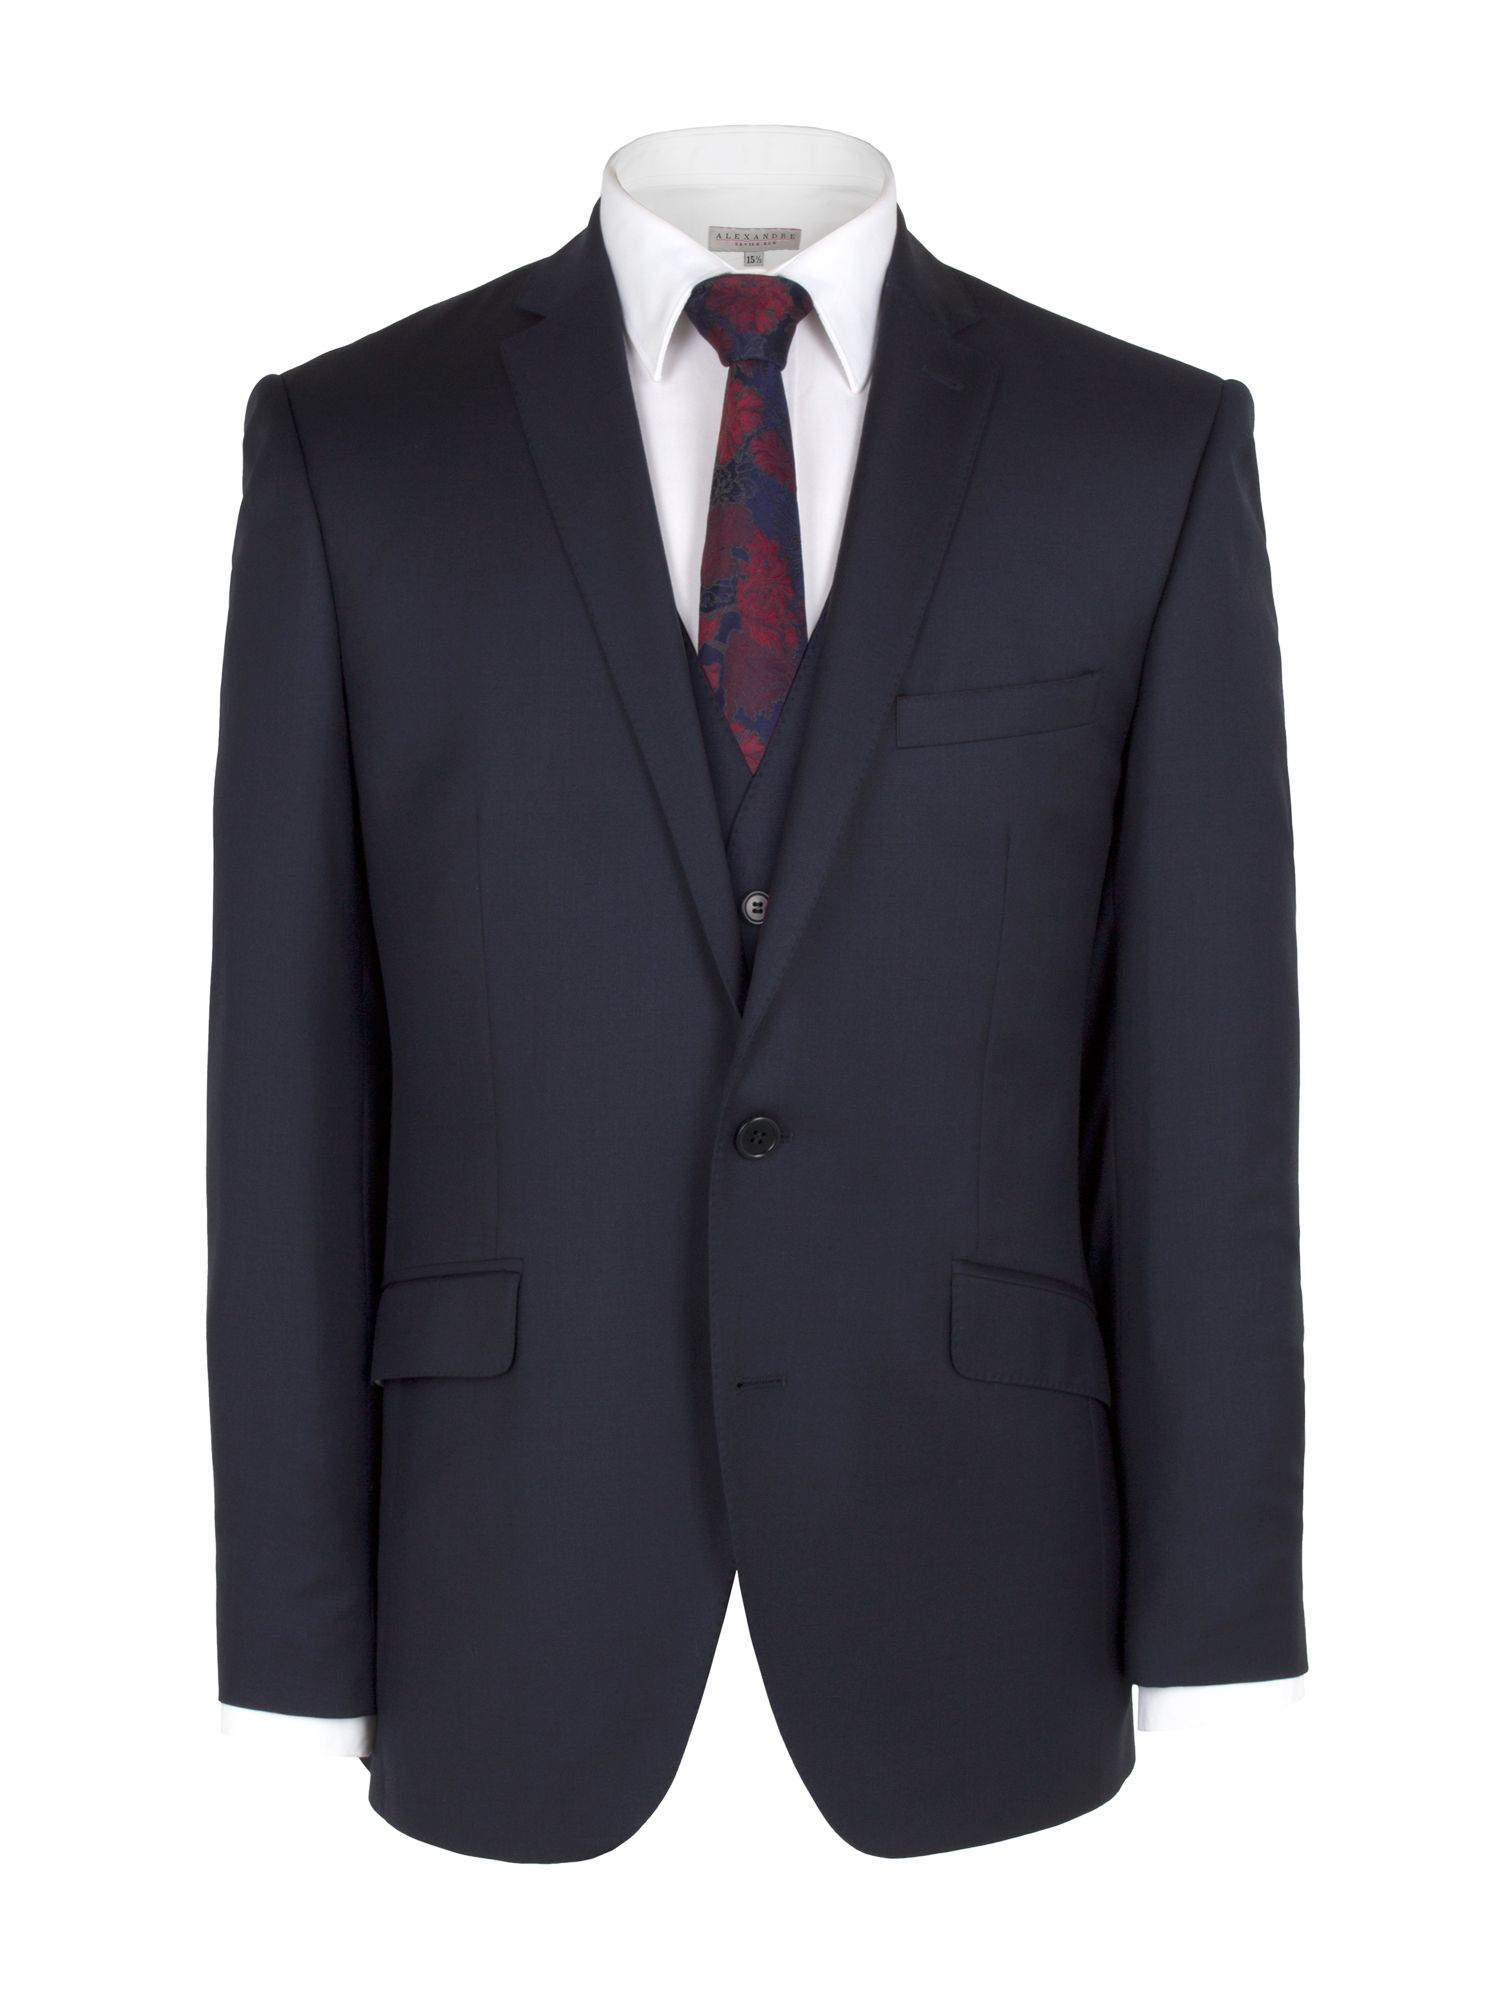 Plain navy cashmere suit